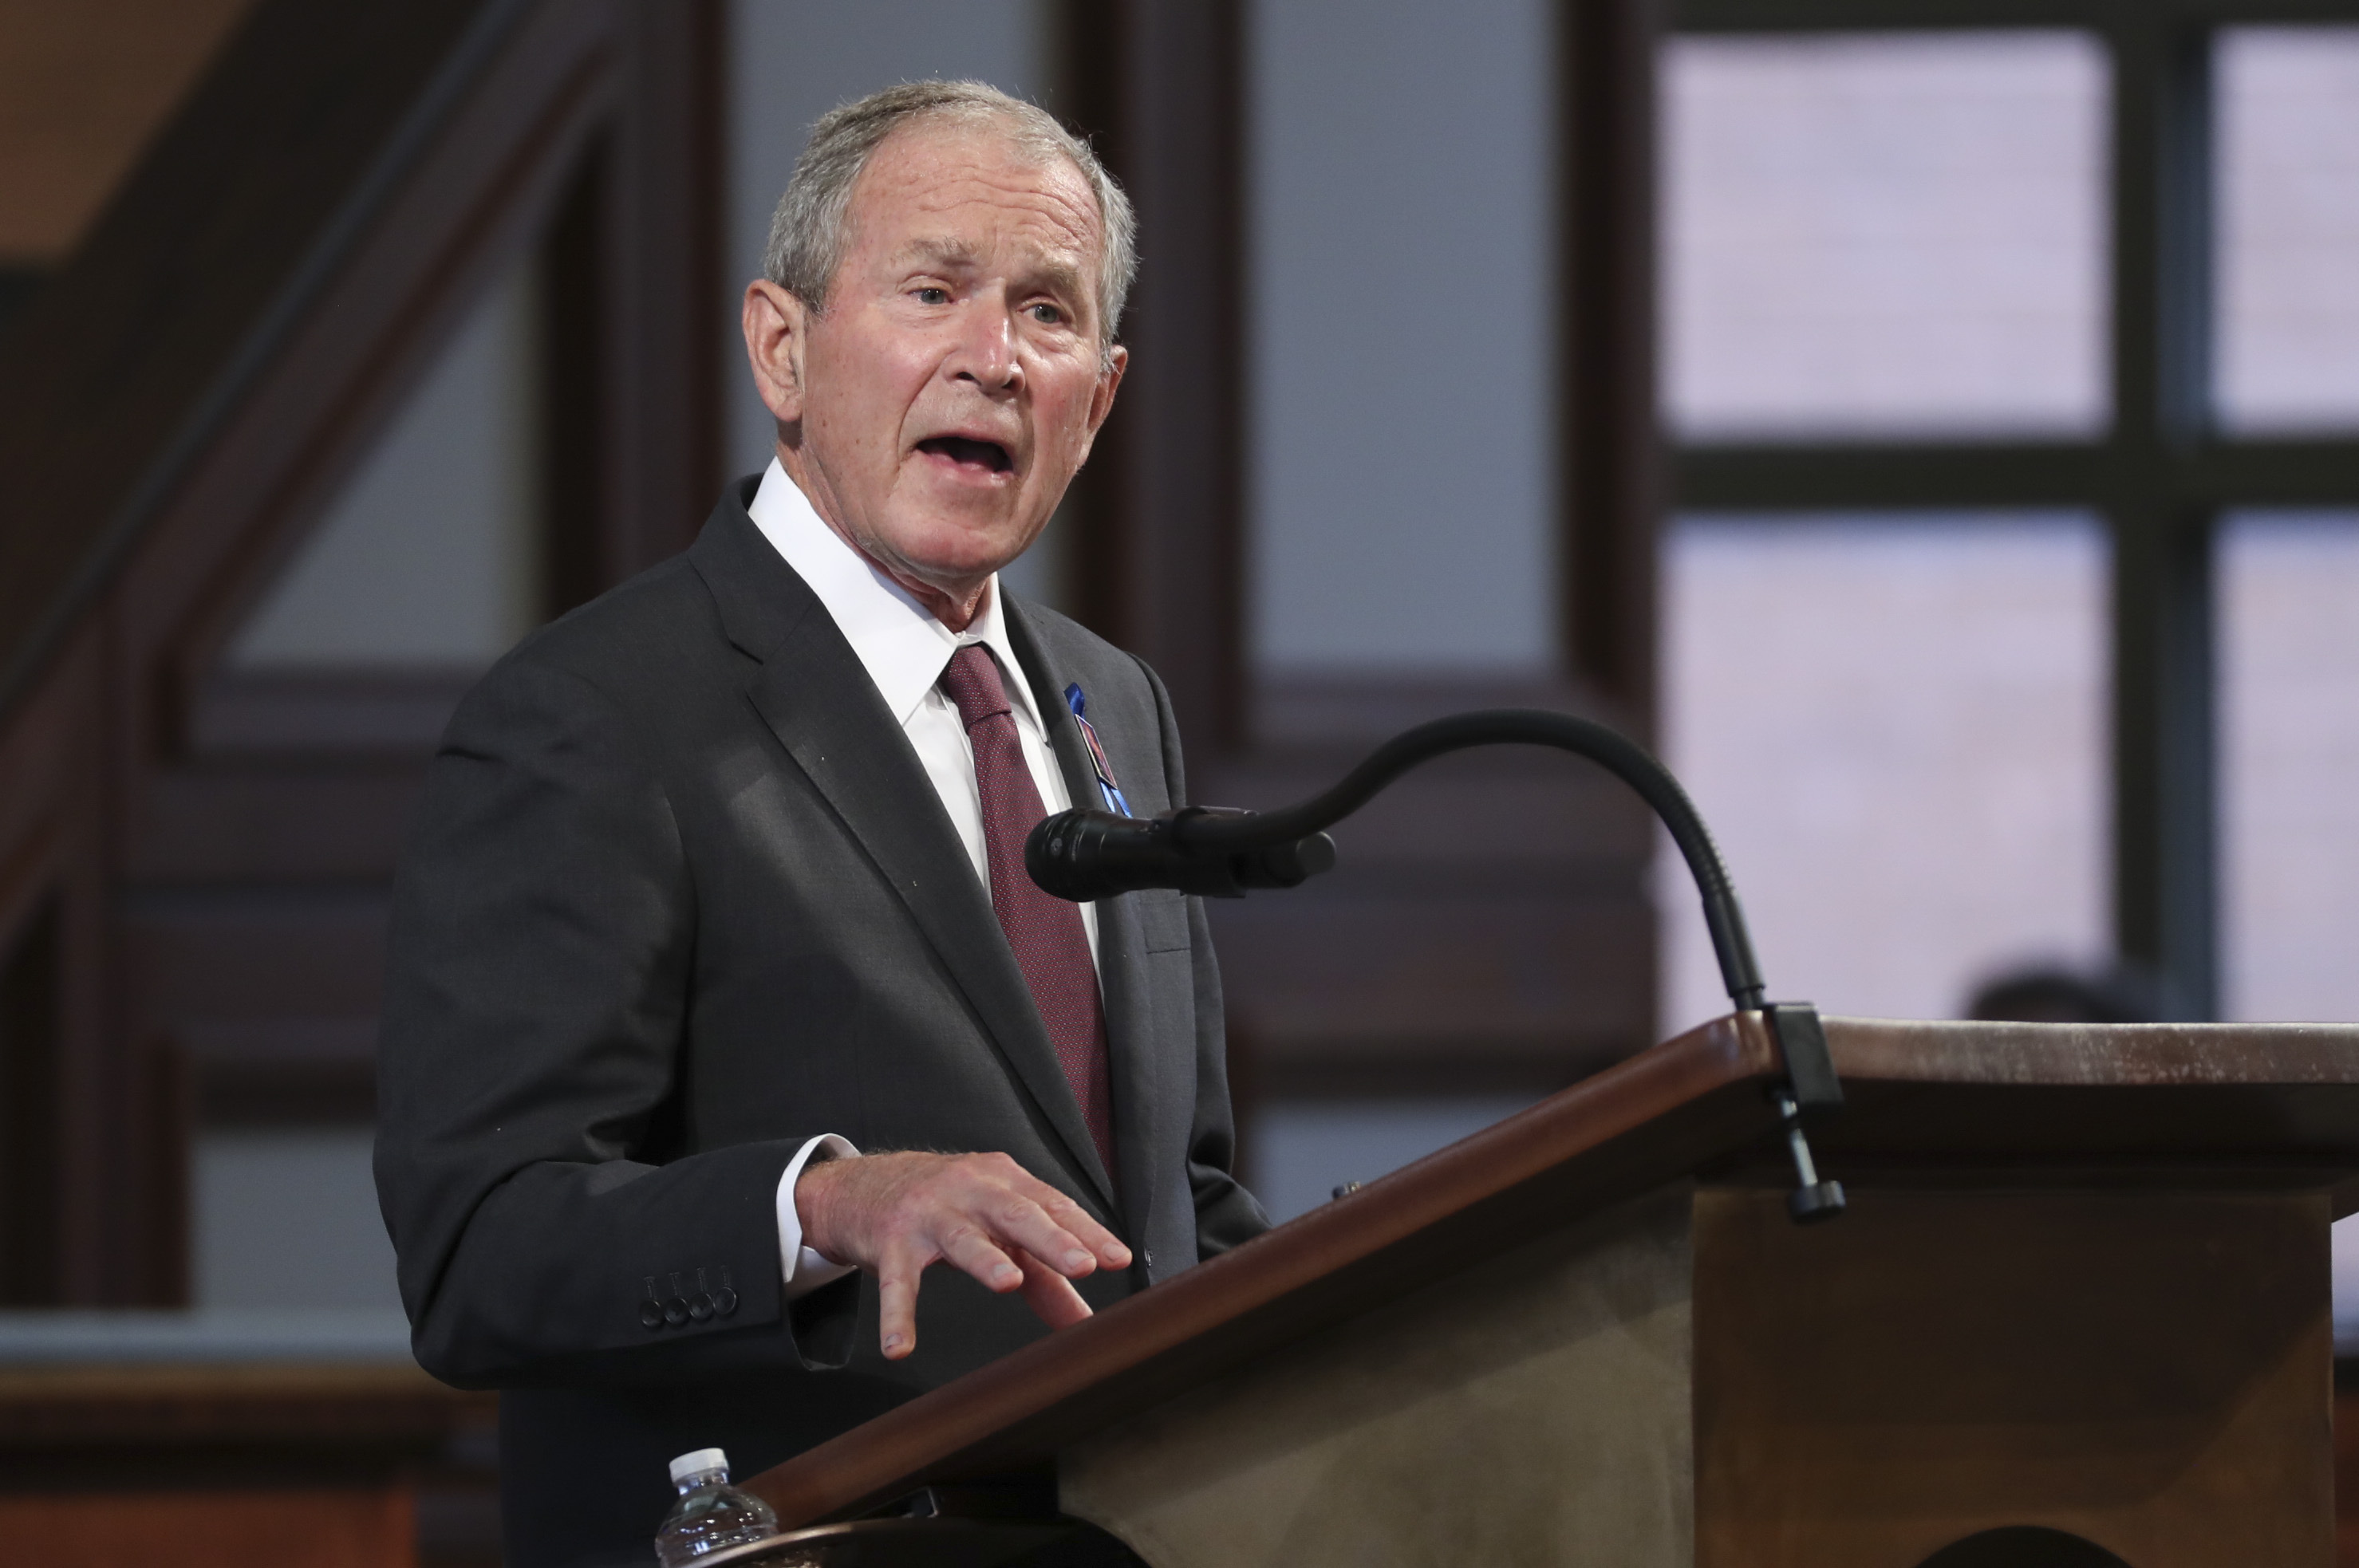 Sickening and heartbreaking sight': Former President George W. Bush speaks  about US Capitol storming